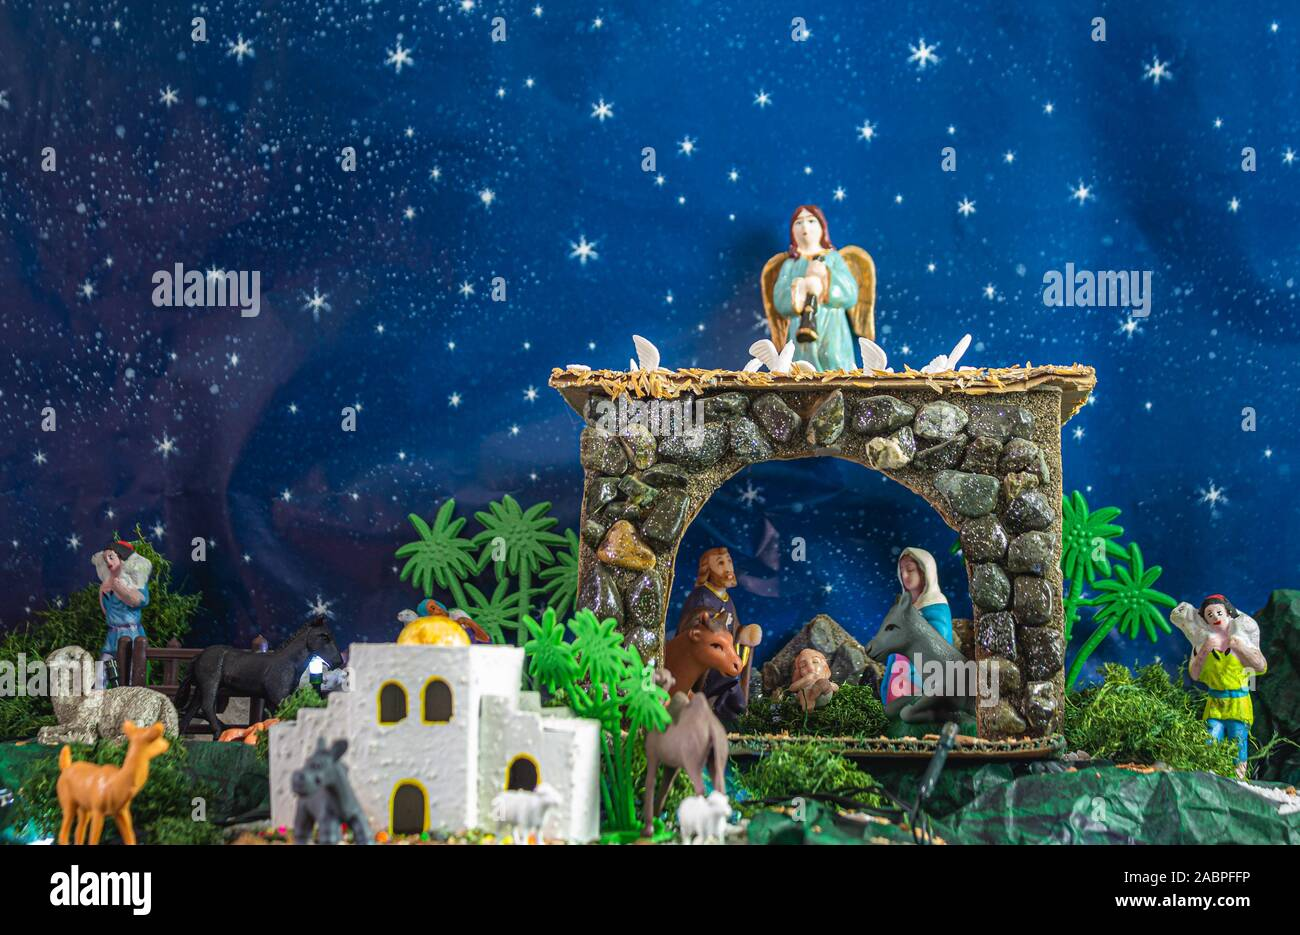 Traditional nativity scene of the birth of the child Jesus in a manger. Virgin Mary, Jose and the baby Jesus are seen with a donkey and a cow. On the Stock Photo